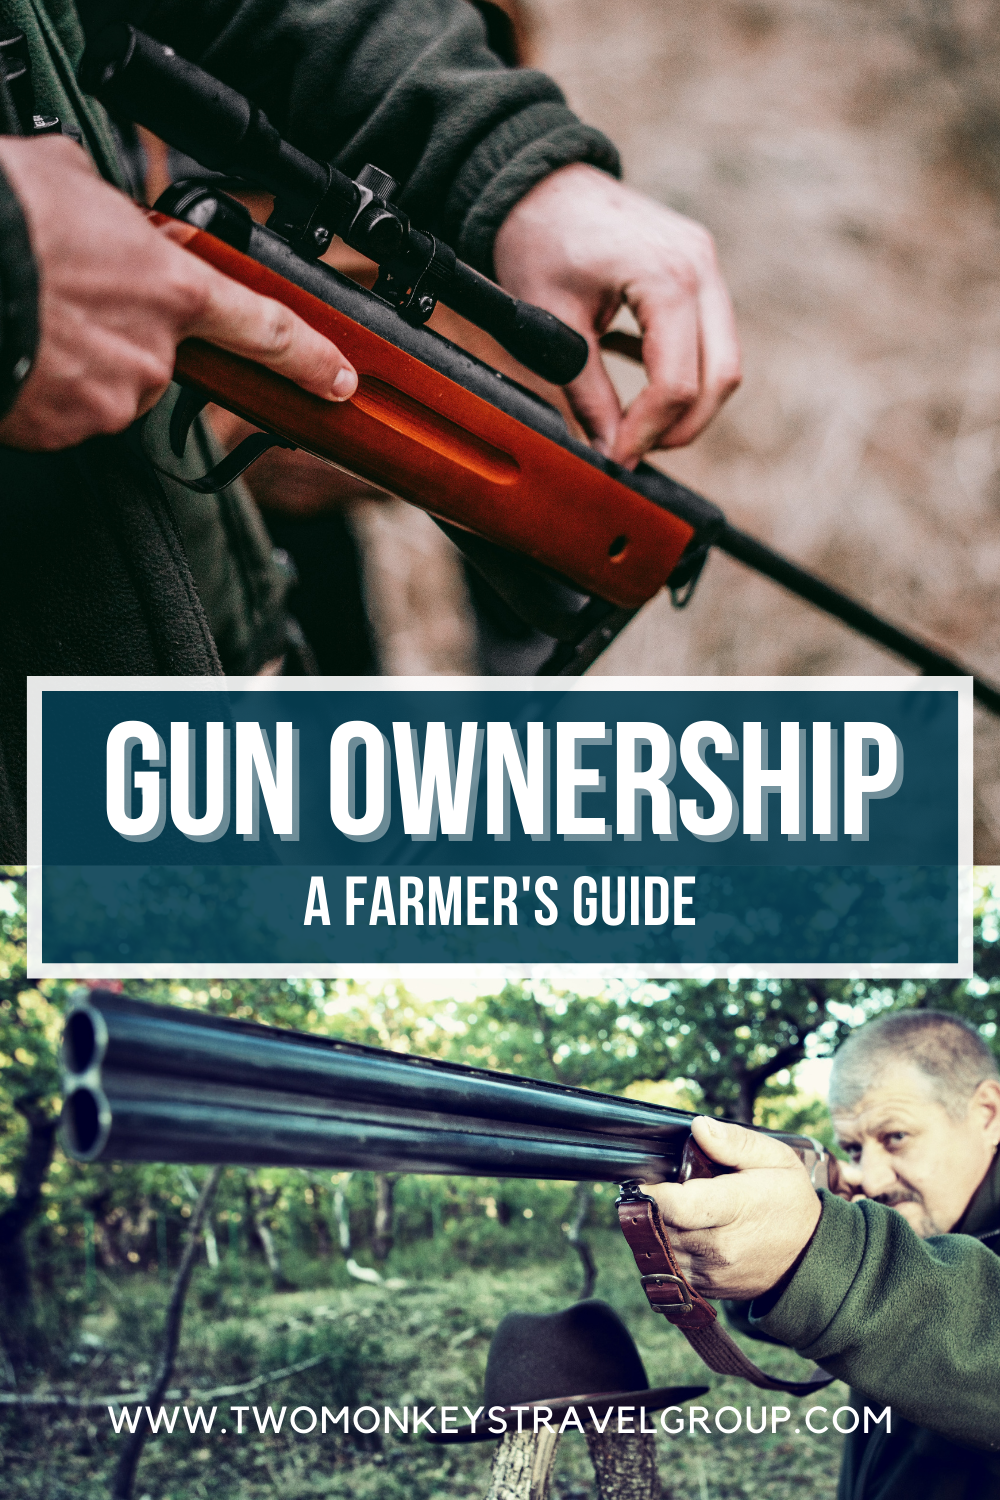 Agricultural Arms A Farmer's Guide to Gun Ownership